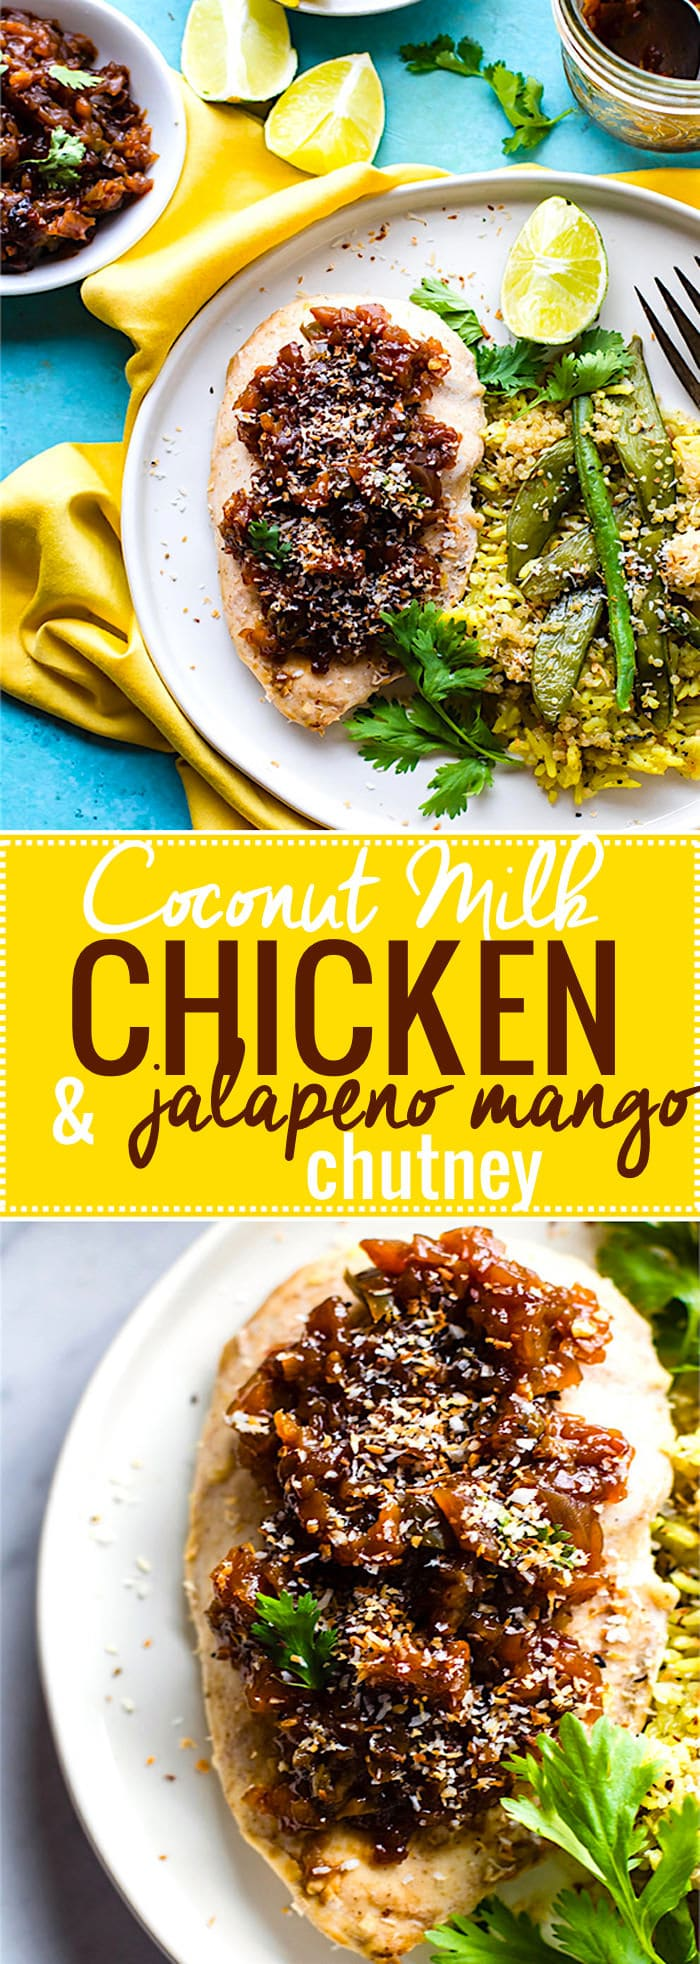 Coconut Milk Chicken with Jalapeño Mango Chutney! A dairy free, gluten free Marinated Coconut Milk Chicken Recipe that is simple, tasty, and easy. Paleo options, gluten free, dairy free! @cottercrunch